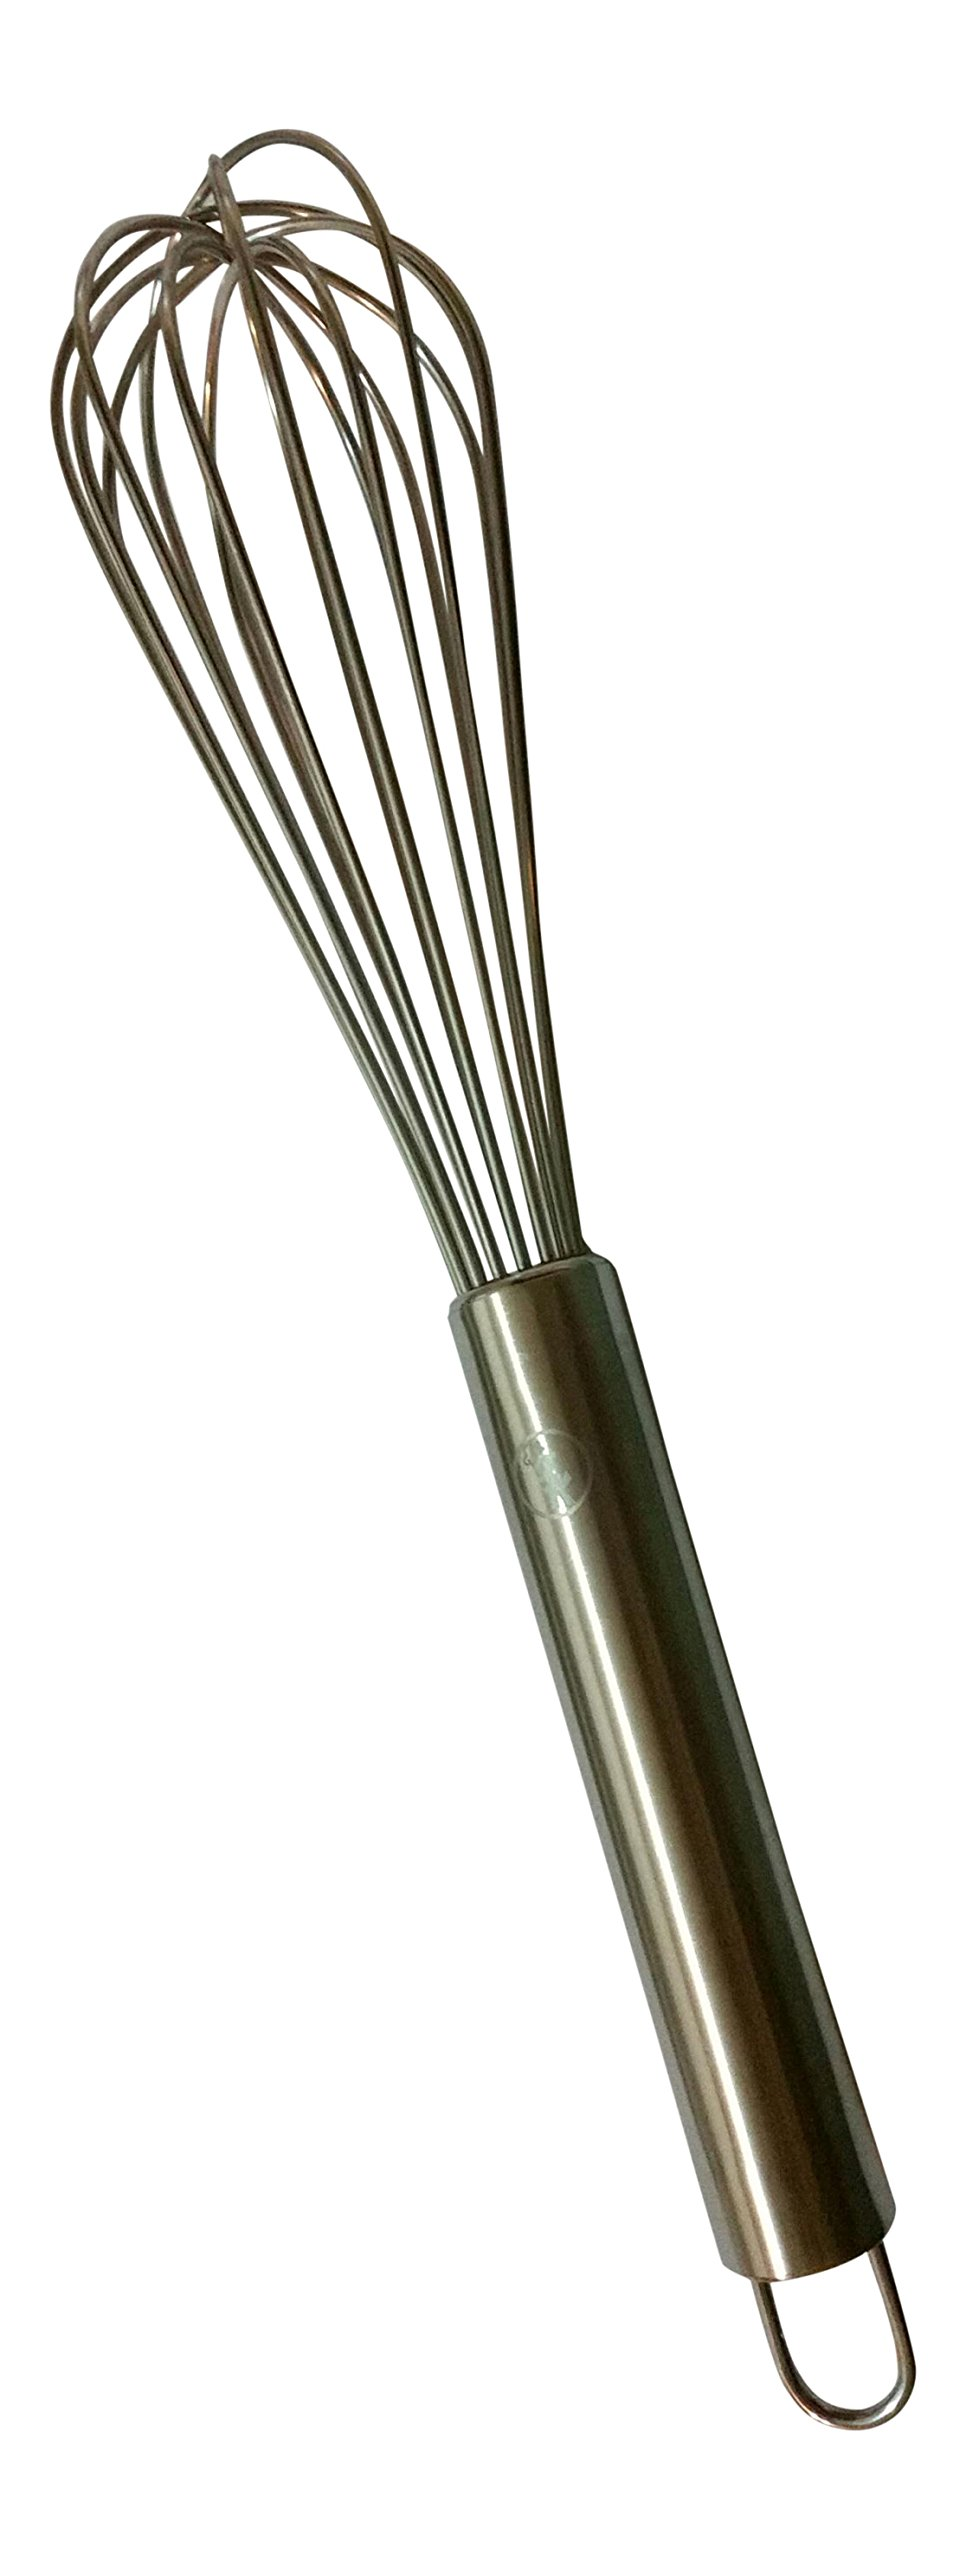 12.5 Inch Balloon Whisk - 18/8 Stainless Steel - 8 Sturdy Wires - Gourmetics Kitchens Cooking Whisk